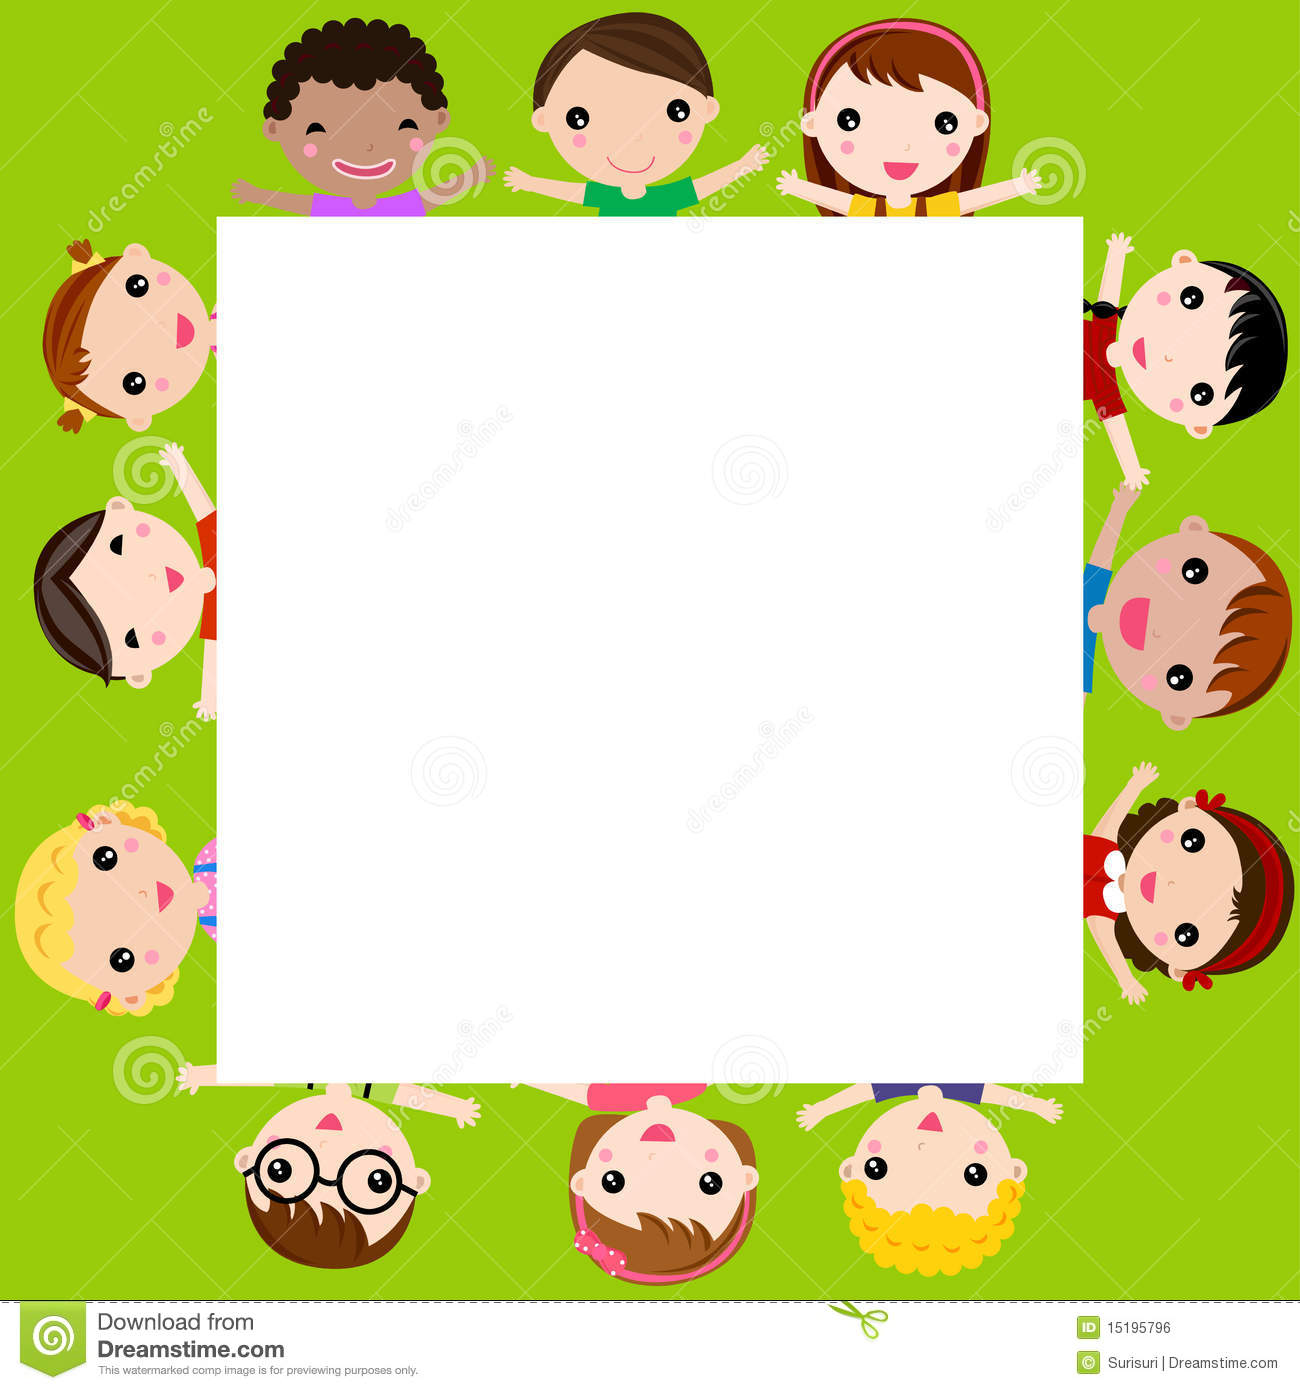 Children And Frame Royalty Free Stock Image - Image: 15195796